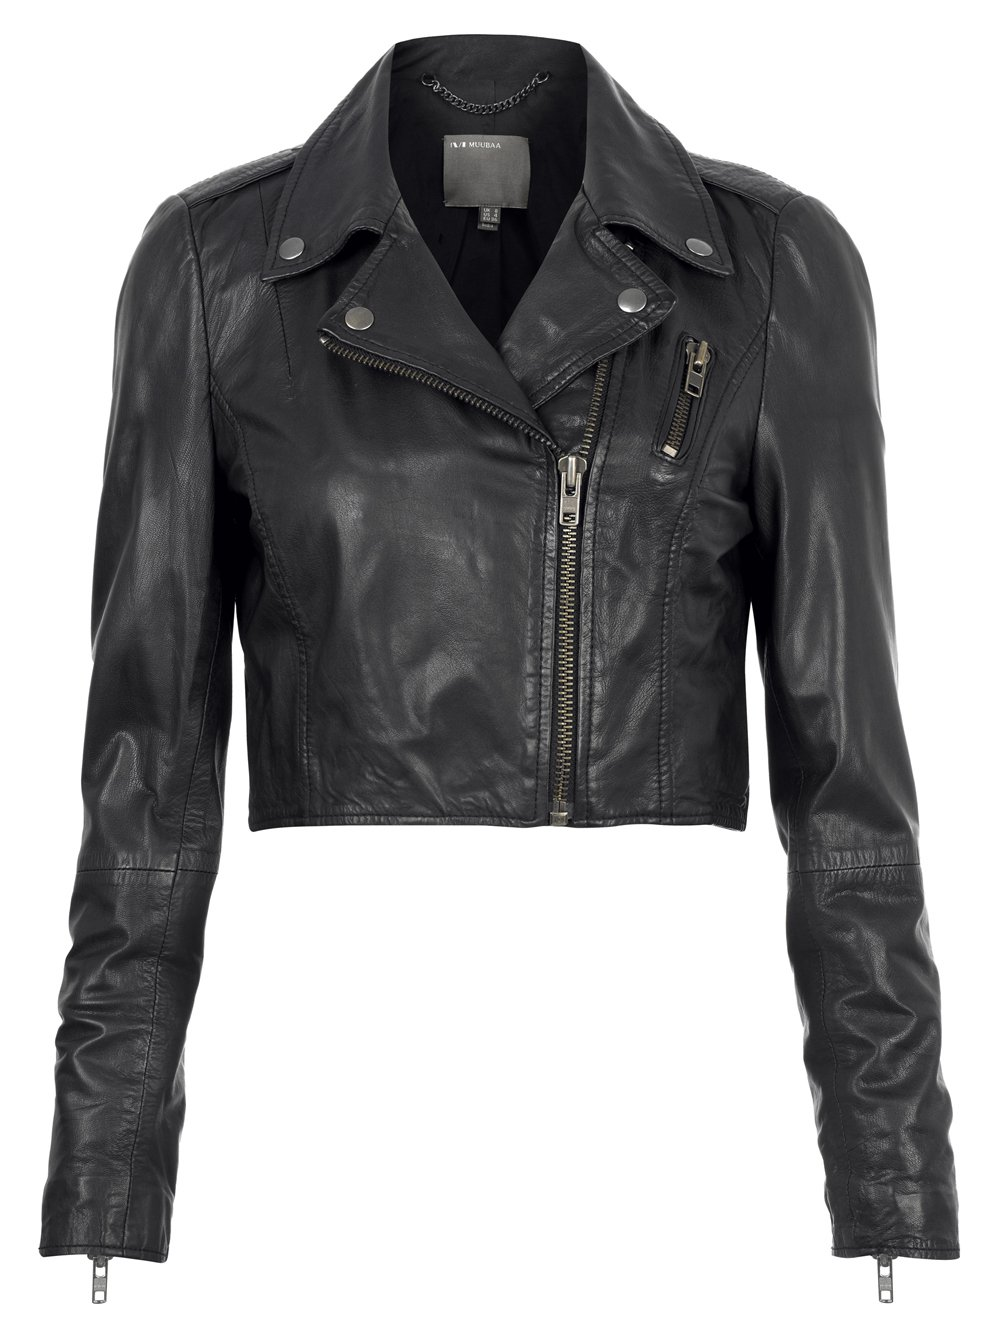 Kristin Cavallari Black Leather Cropped Jacket Women. Description: Kristin Cavallari is notable for her style and magnificence whatever she wear simply move toward becoming style this is the reason here is an extraordinary news for every one of her fans and it is that now they can wear Kristin Cavallari Black Leather Cropped Jacket and impact their style like fefdinterested.gq shade of this coat.